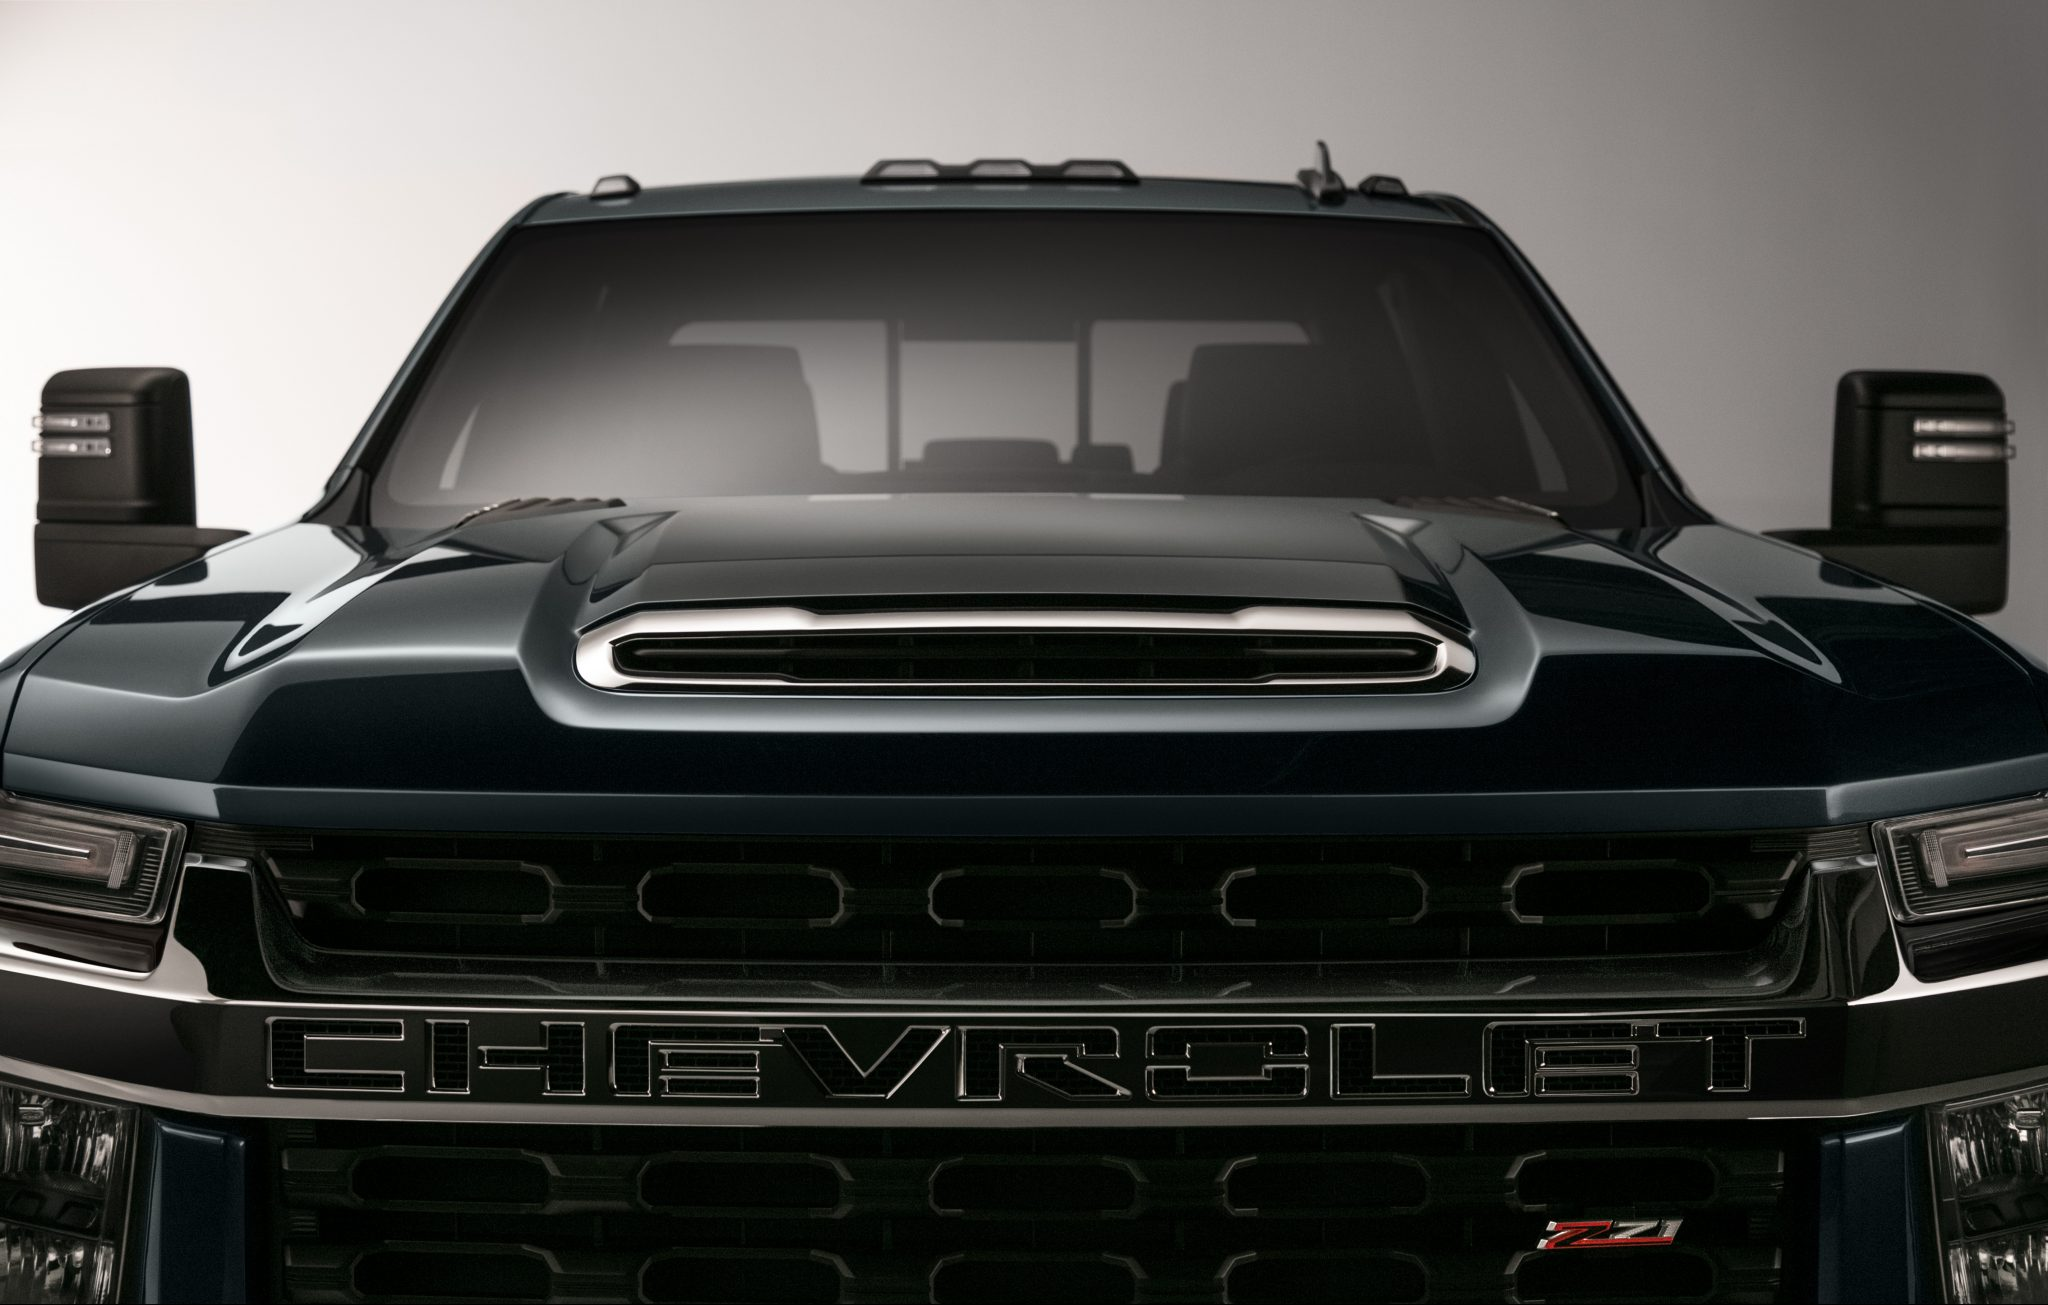 The new 2020 Chevrolet Silverado HD just looks mean!